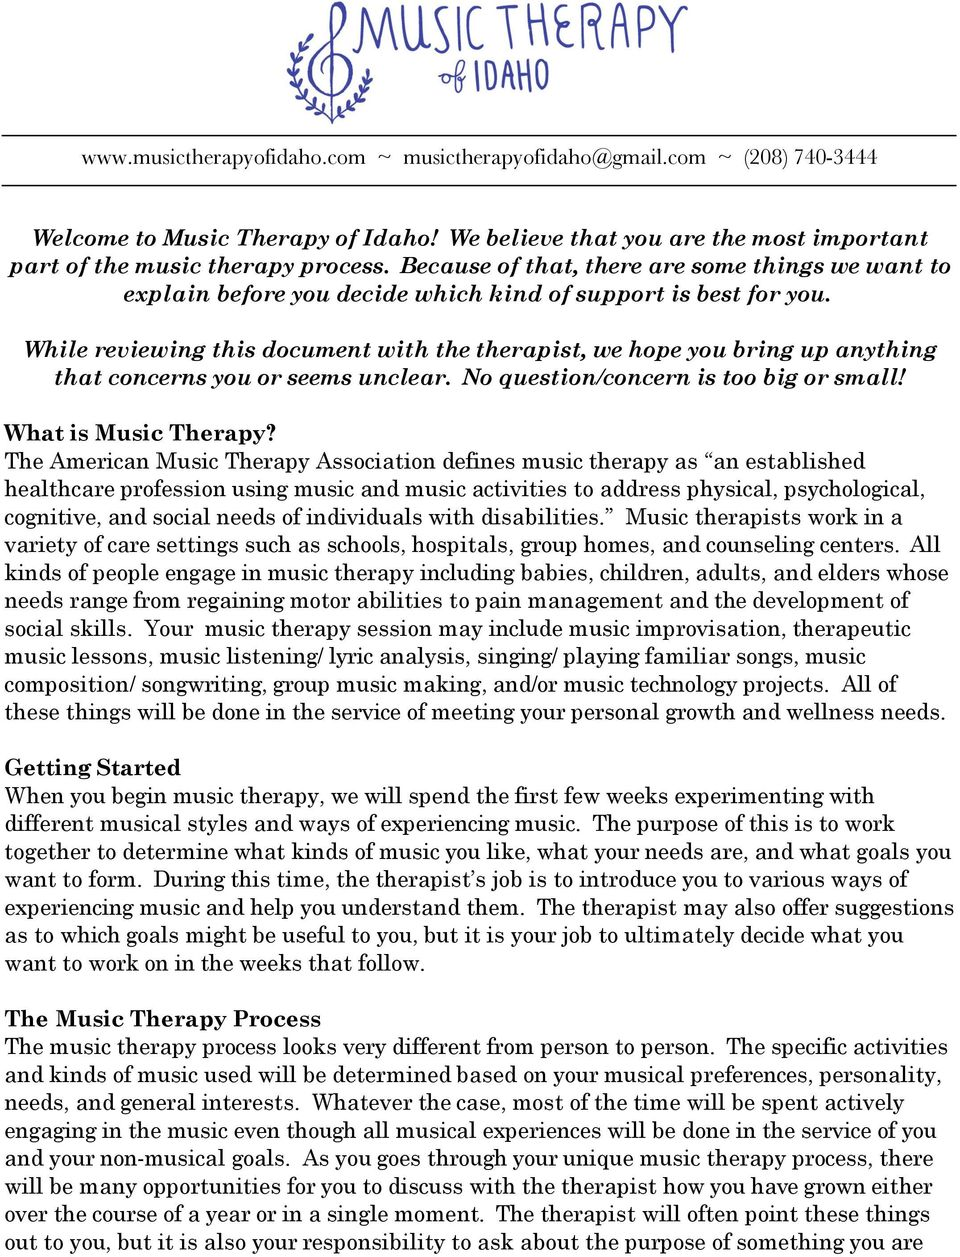 While reviewing this document with the therapist, we hope you bring up anything that concerns you or seems unclear. No question/concern is too big or small! What is Music Therapy?